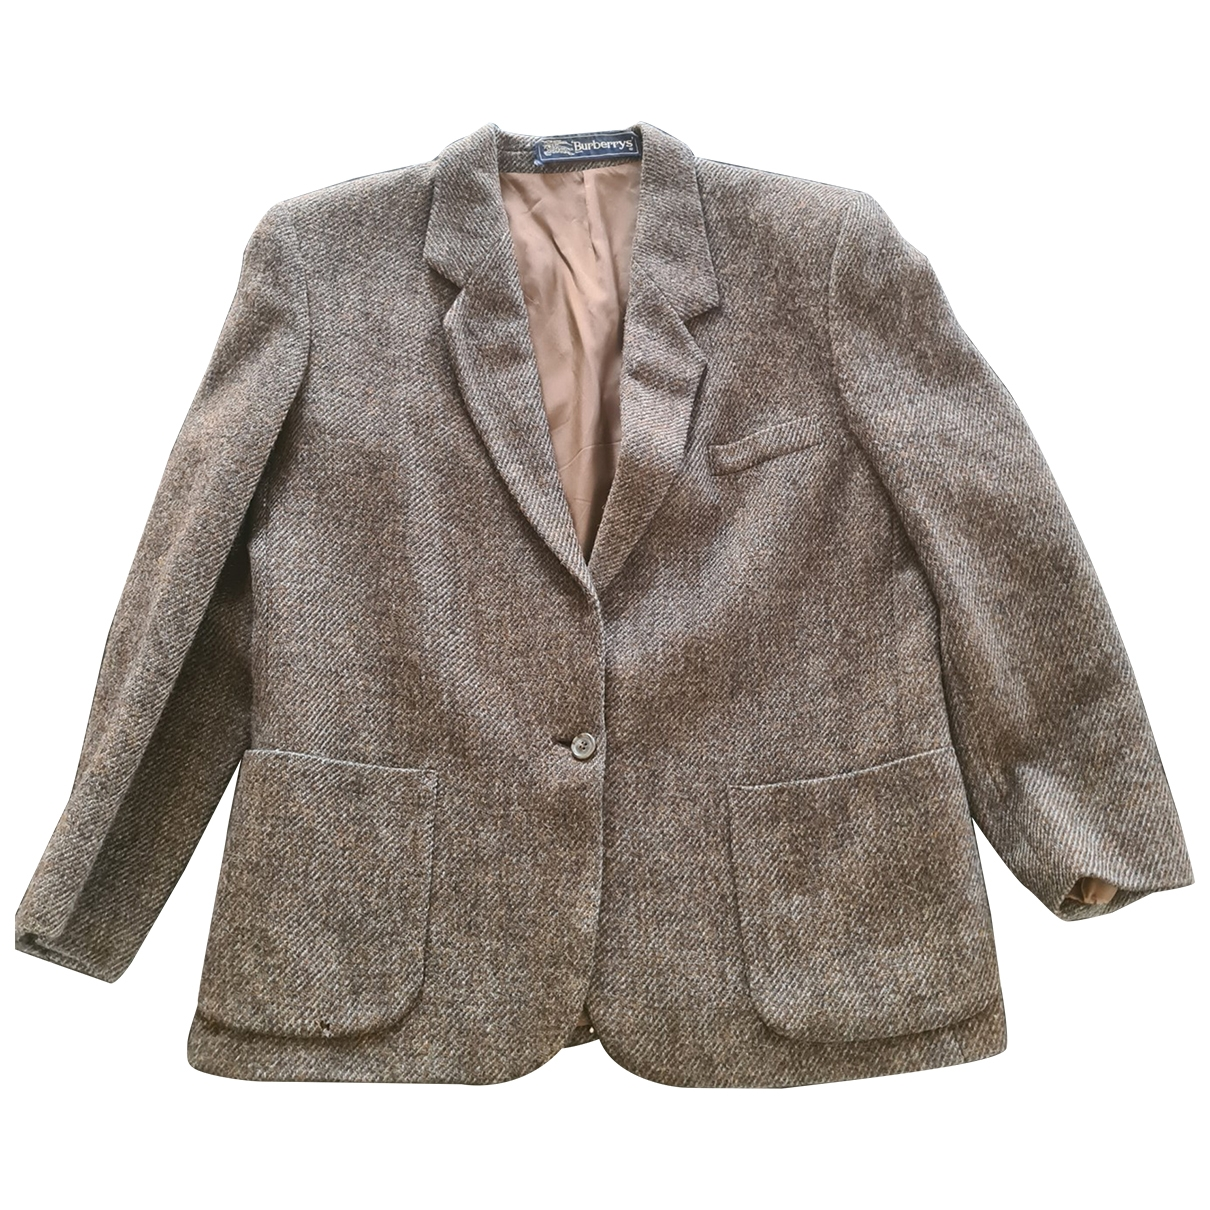 Burberry \N Brown Wool jacket for Women 40 FR